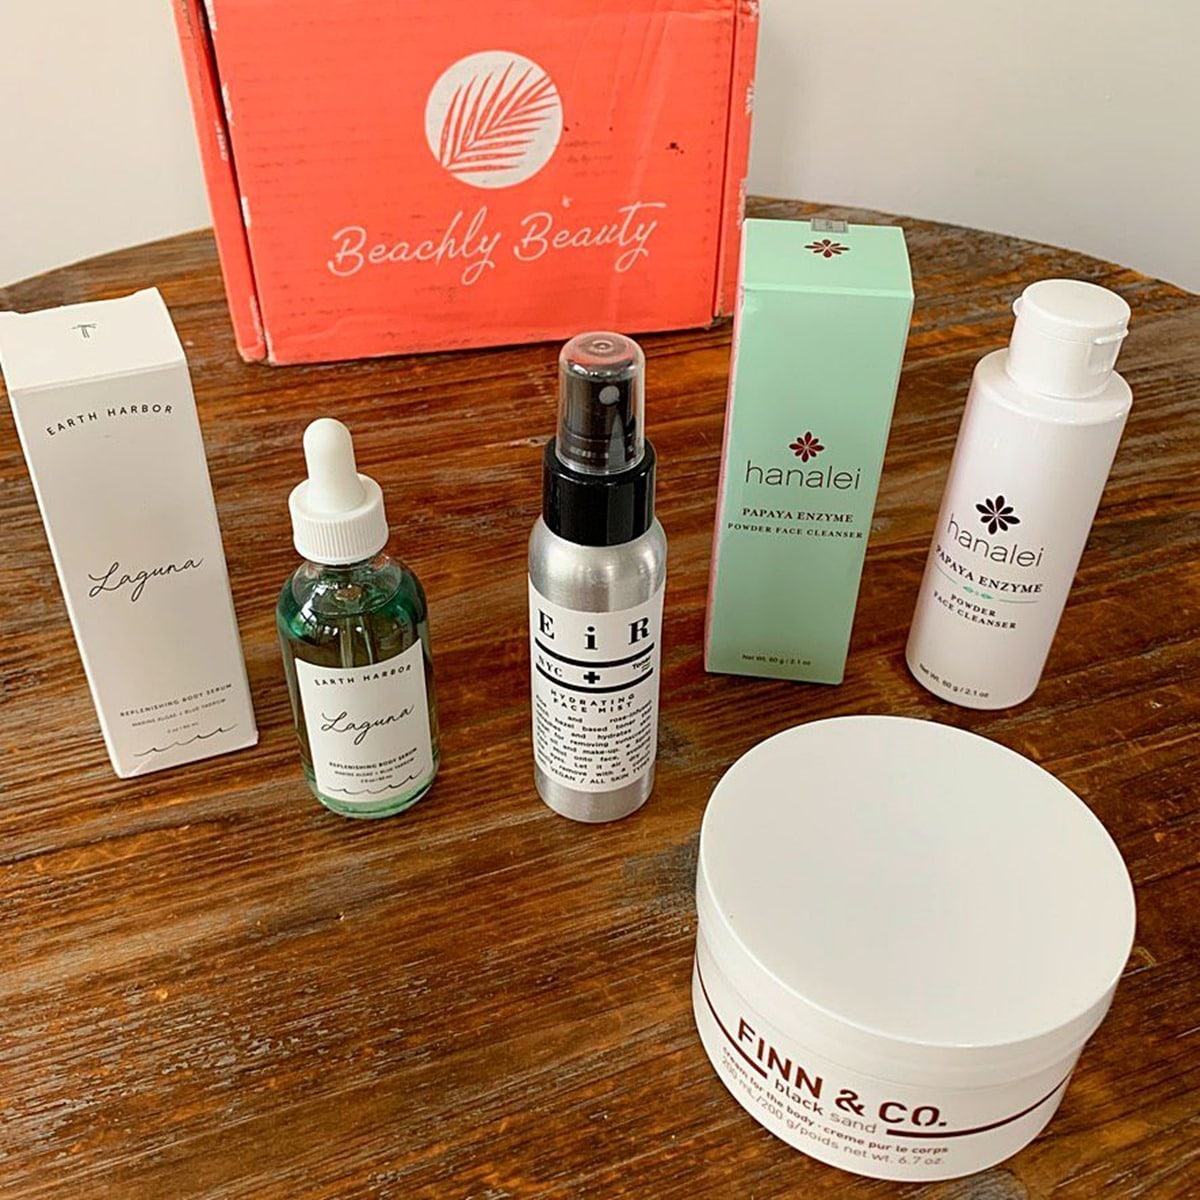 beachly beauty box fall 2021 review15